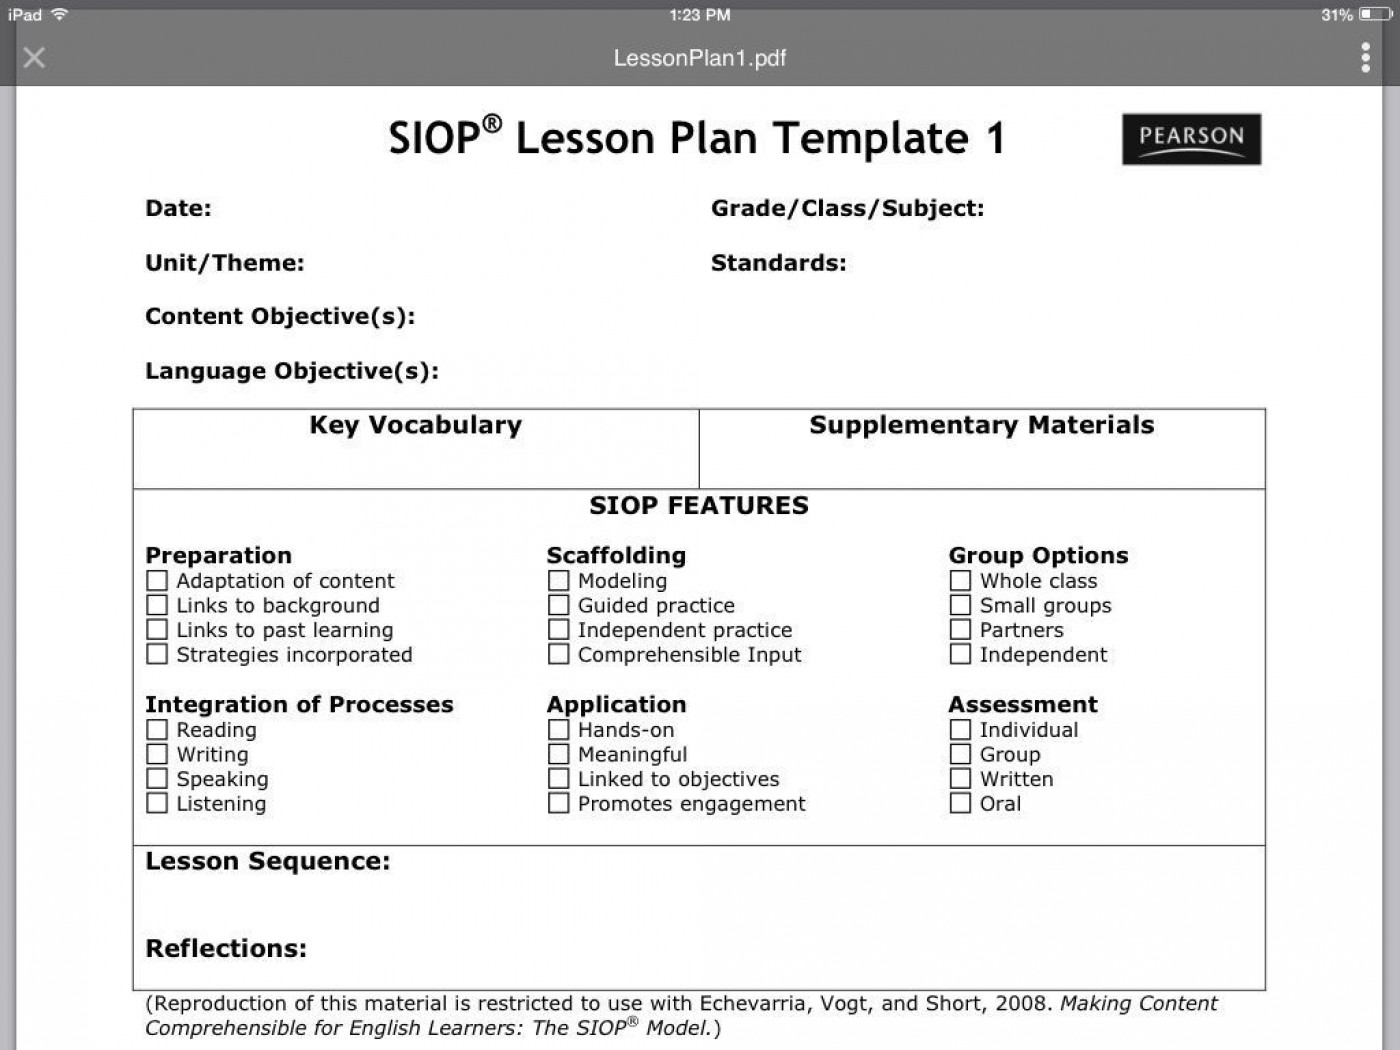 007 Striking Siop Lesson Plan Template 1 Highest Clarity  Example First Grade Word Document 1st1400